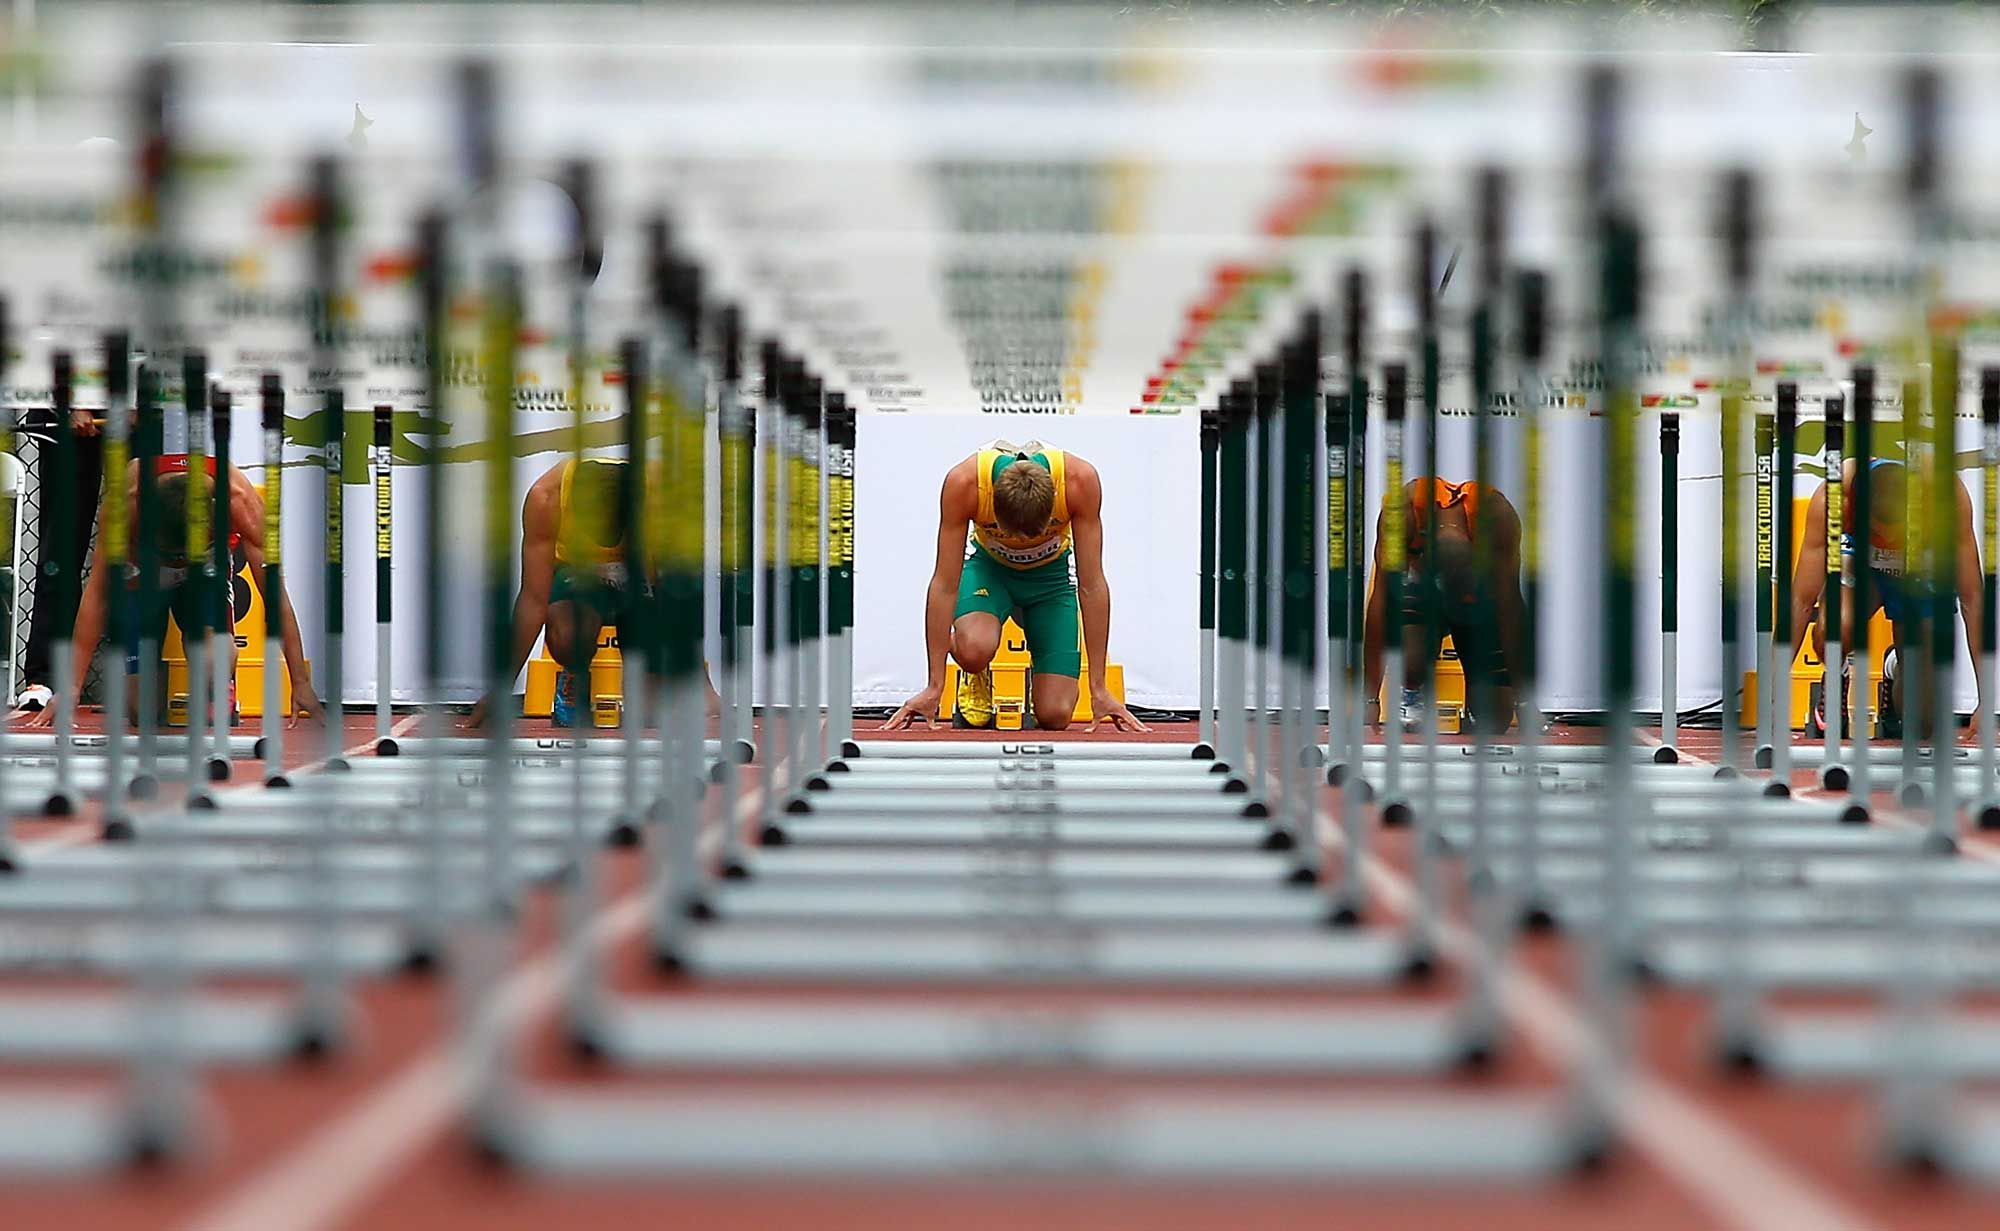 Cedric Dubler of Australia gets set in the blocks for the start of the 110m hurdle portion of the men's decathlon during day two of the IAAF World Junior Championships at Hayward Field on July 23, 2014 in Eugene, Oregon. (Photo by Jonathan Ferrey/Getty Images)